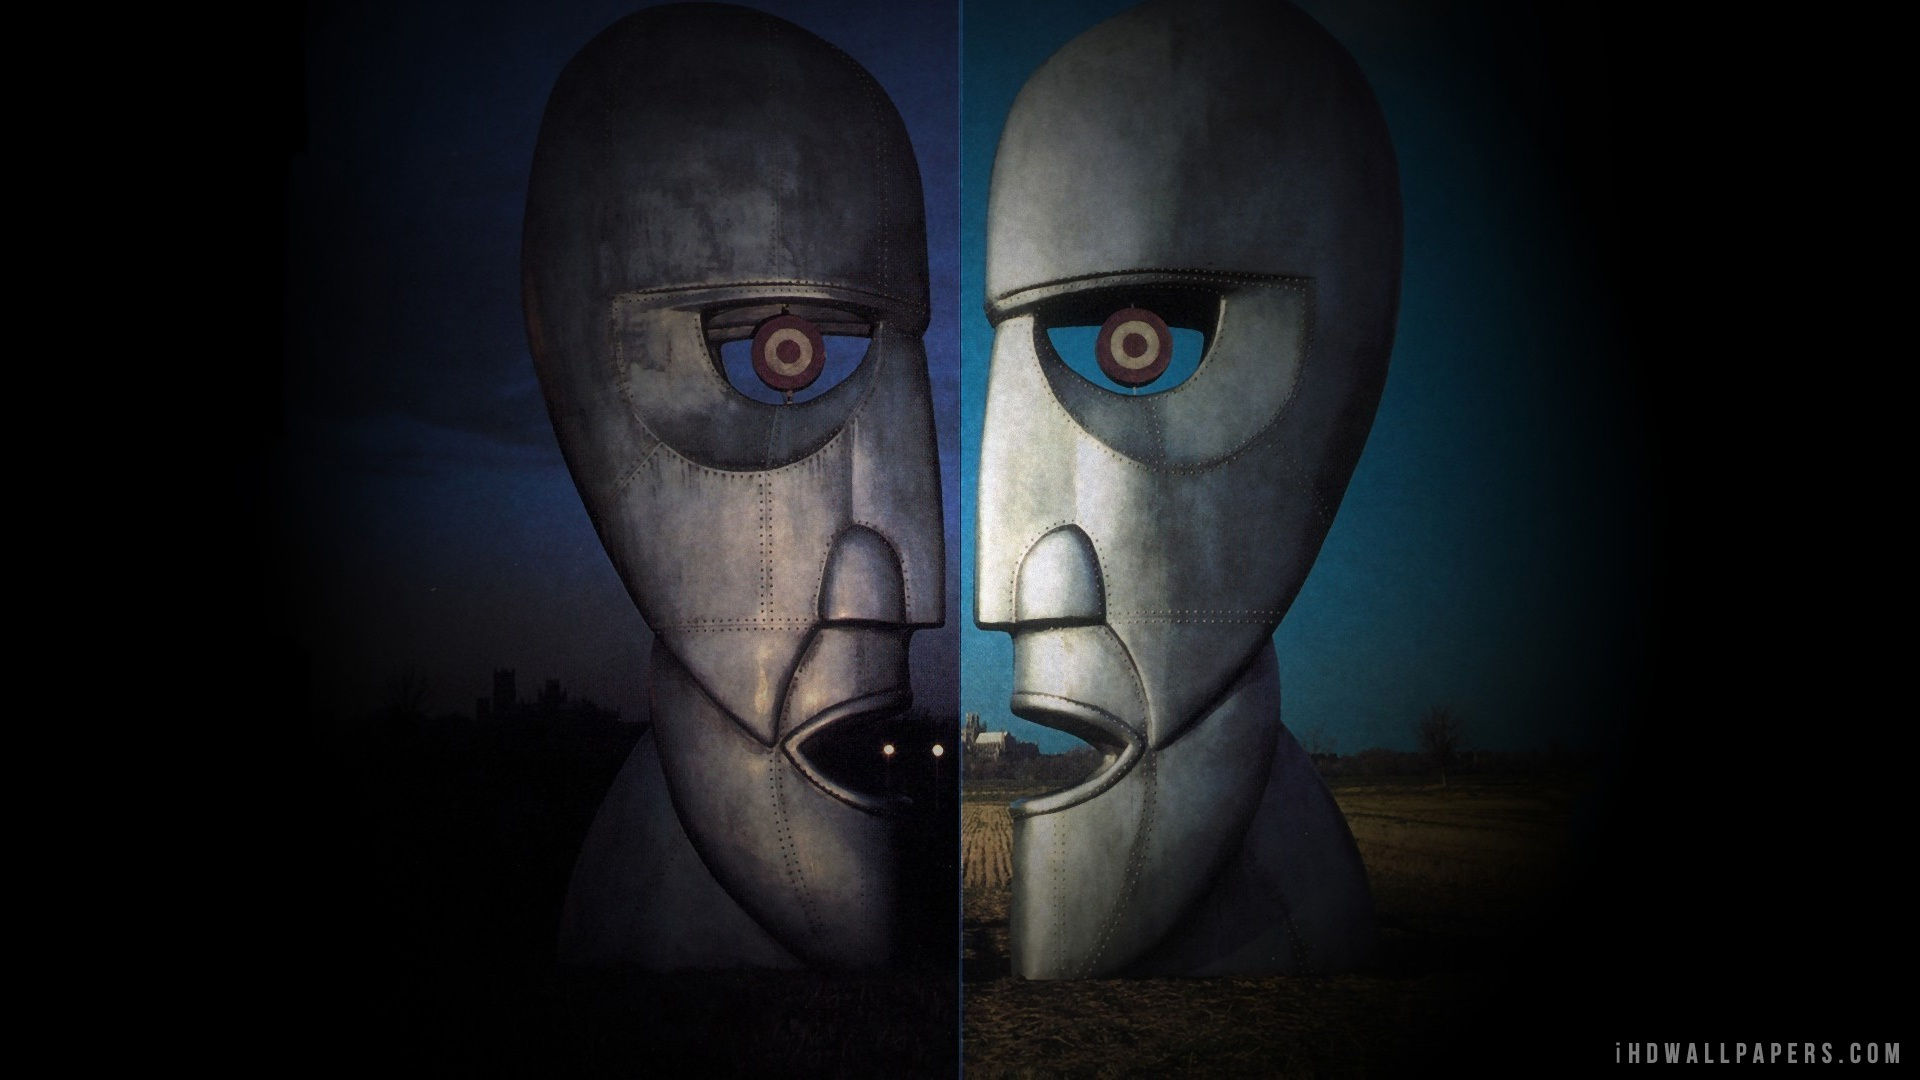 Free Download Pink Floyd Iphone Wallpaper Hd 1920x1080 For